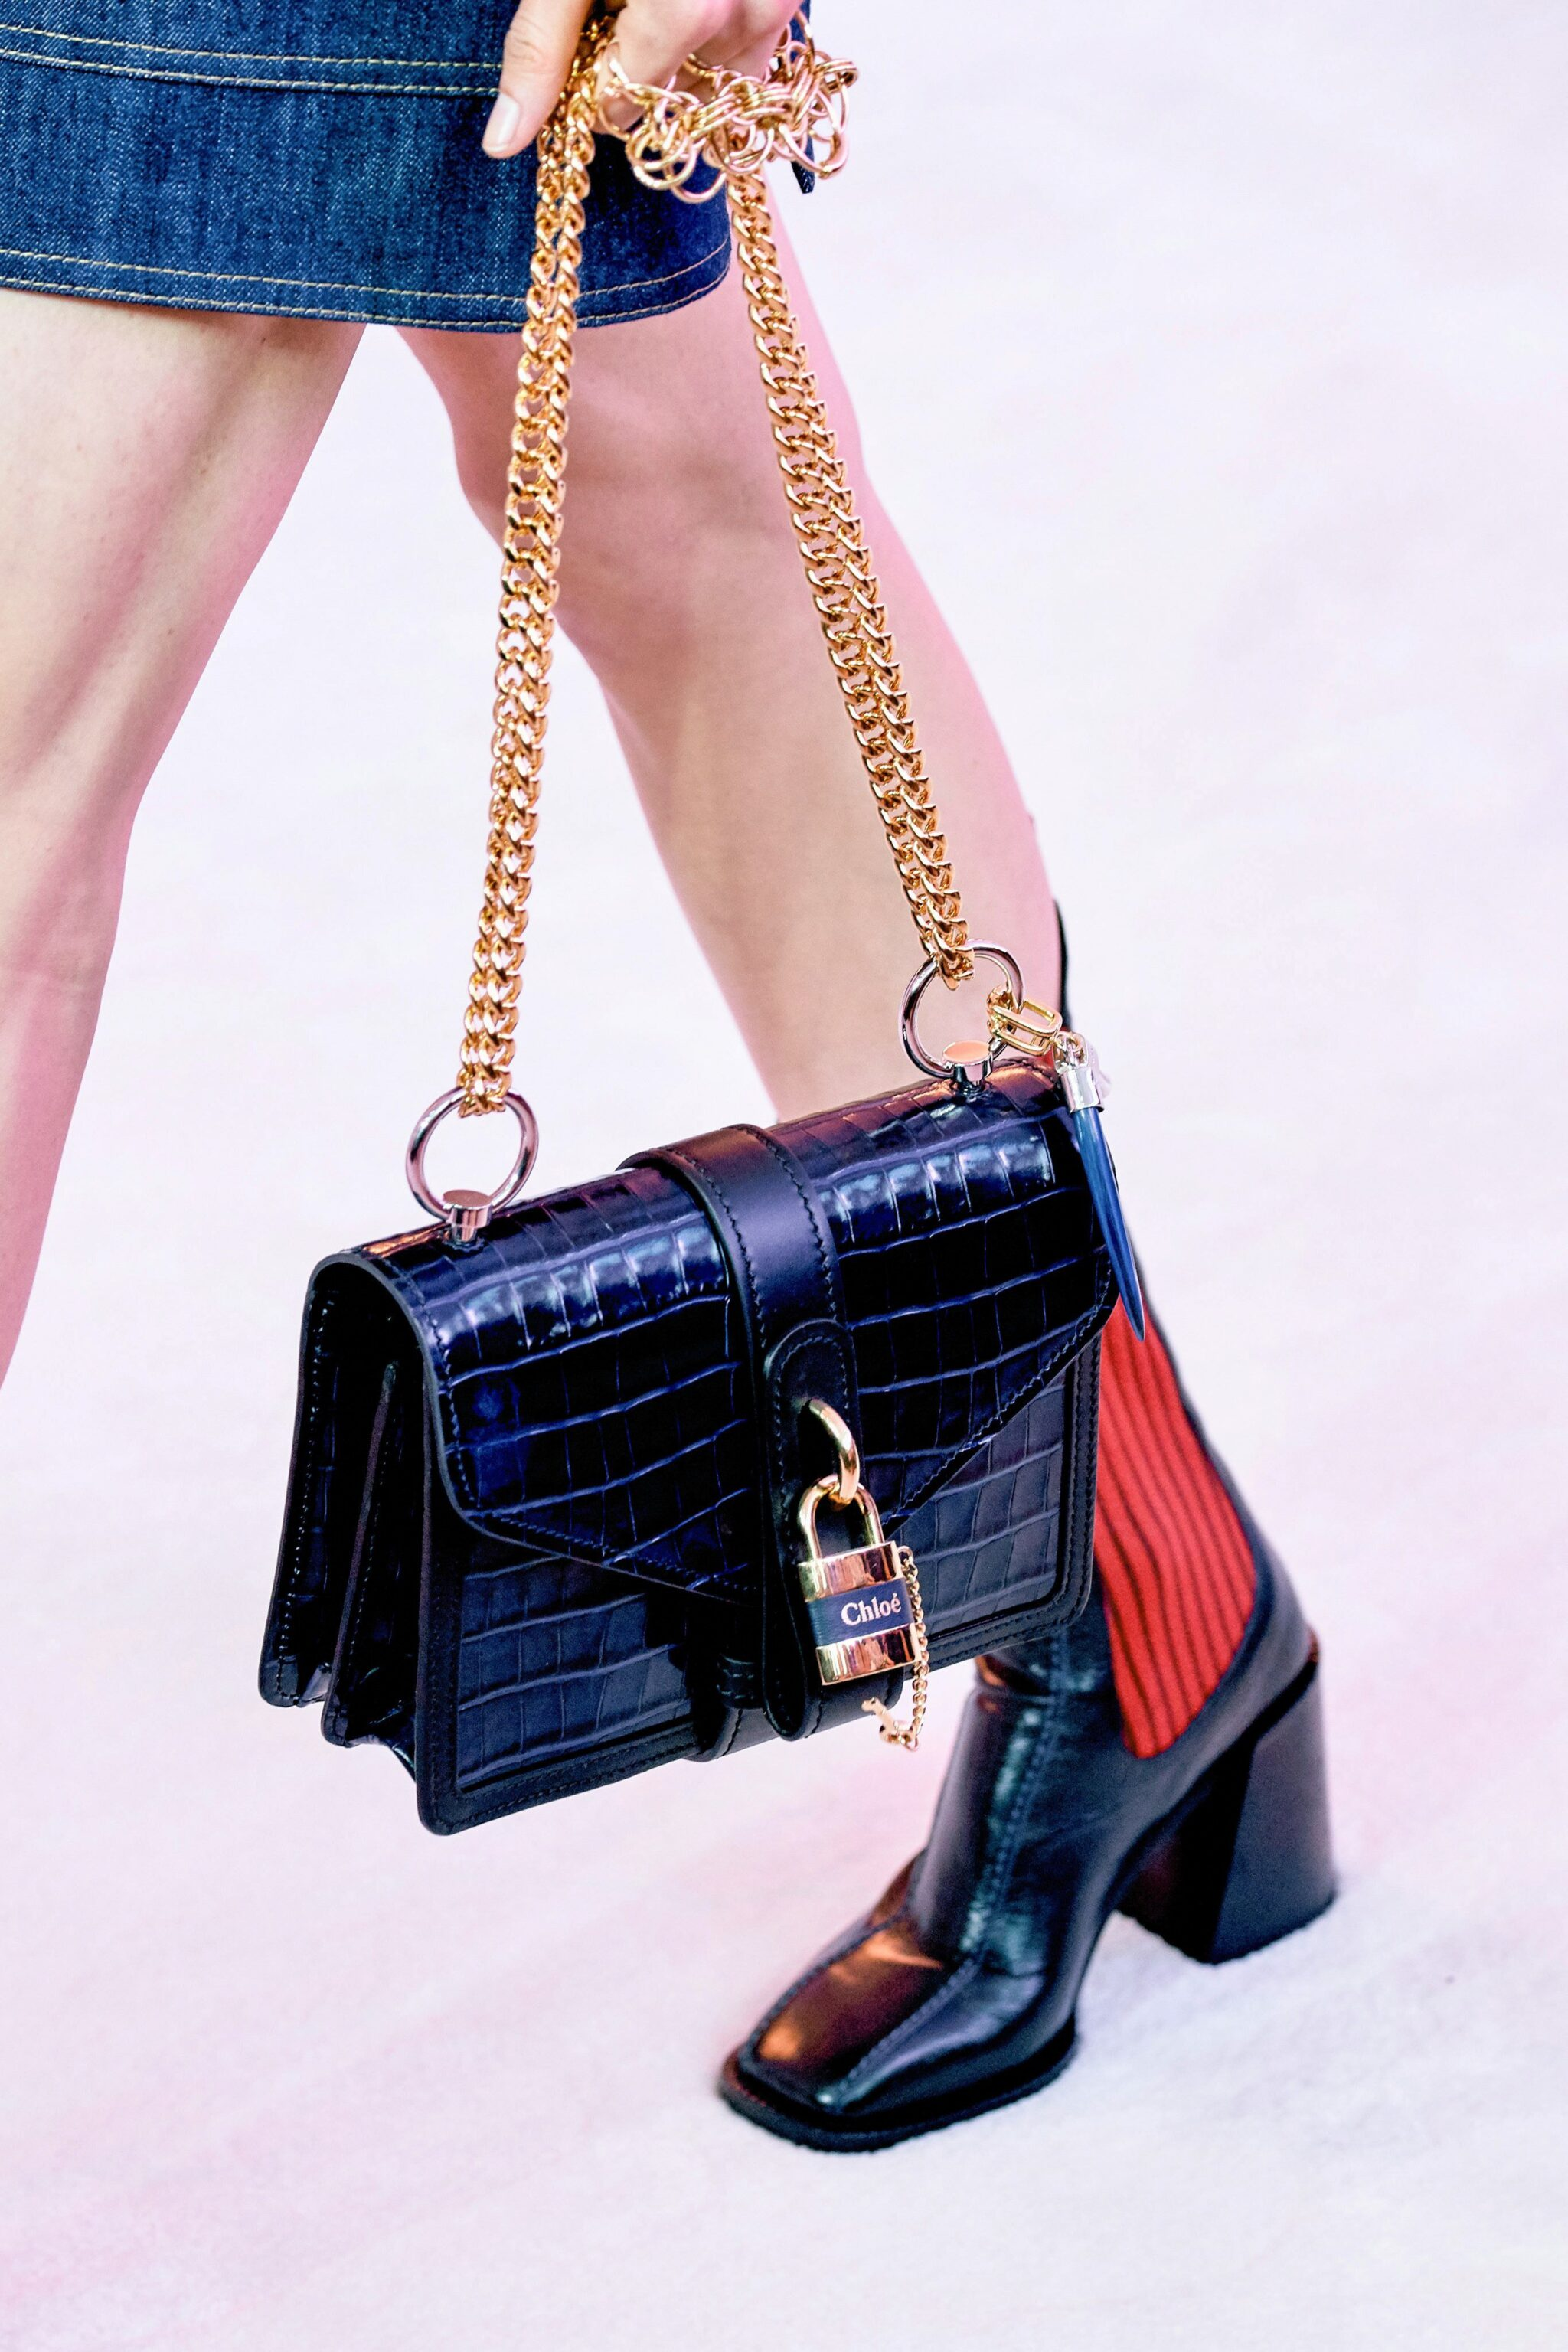 Chloe Fall Winter 2019 Runway Bag Collection Spotted Fashion